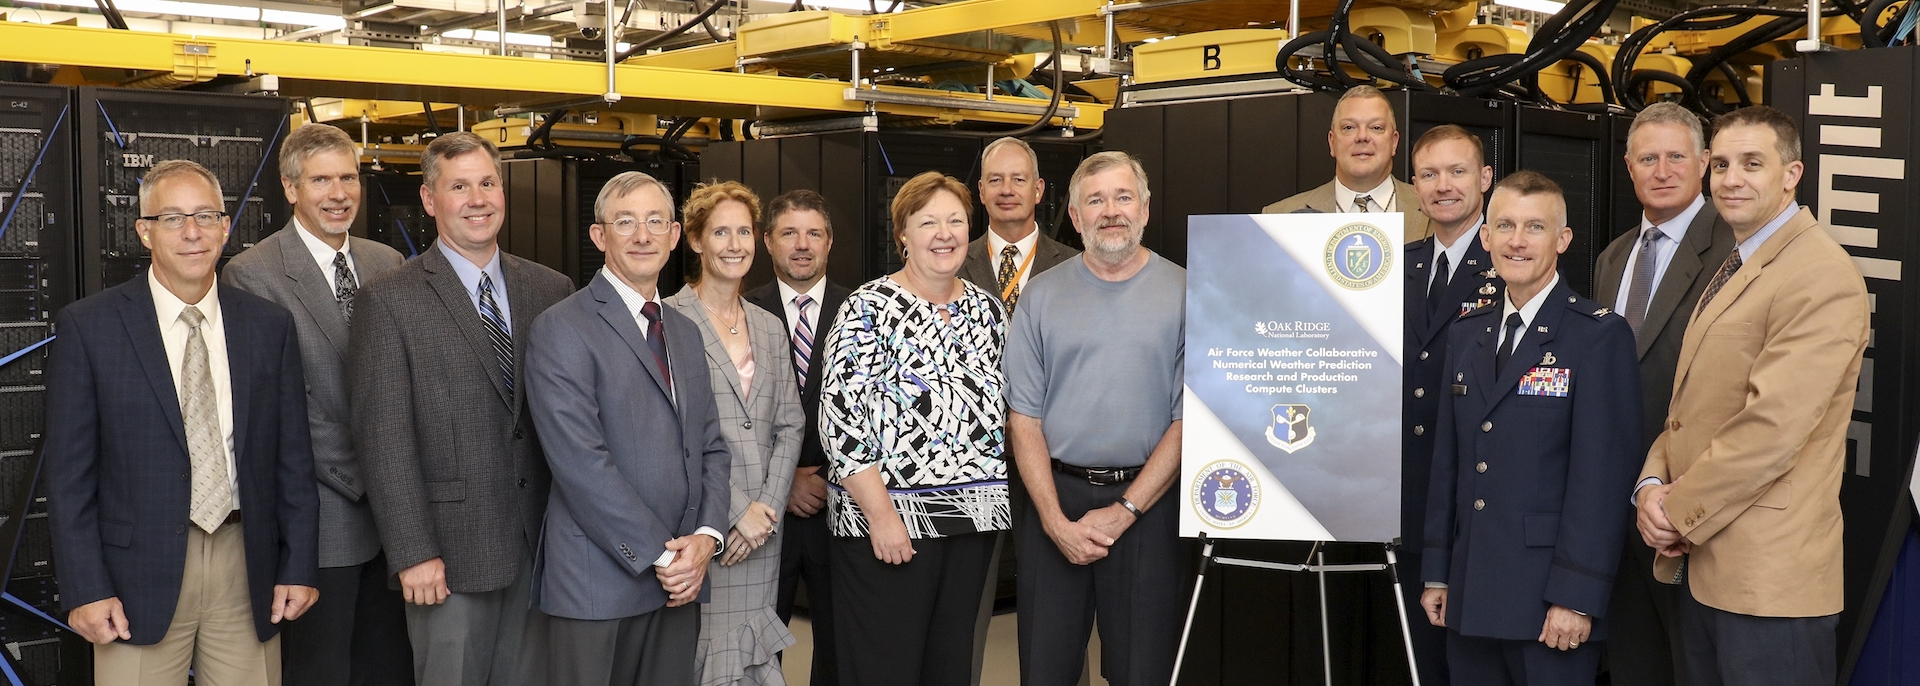 Representatives from the US Air Force met with DOE and ORNL computing and global security team members on July 10 to kick off the collaboration.